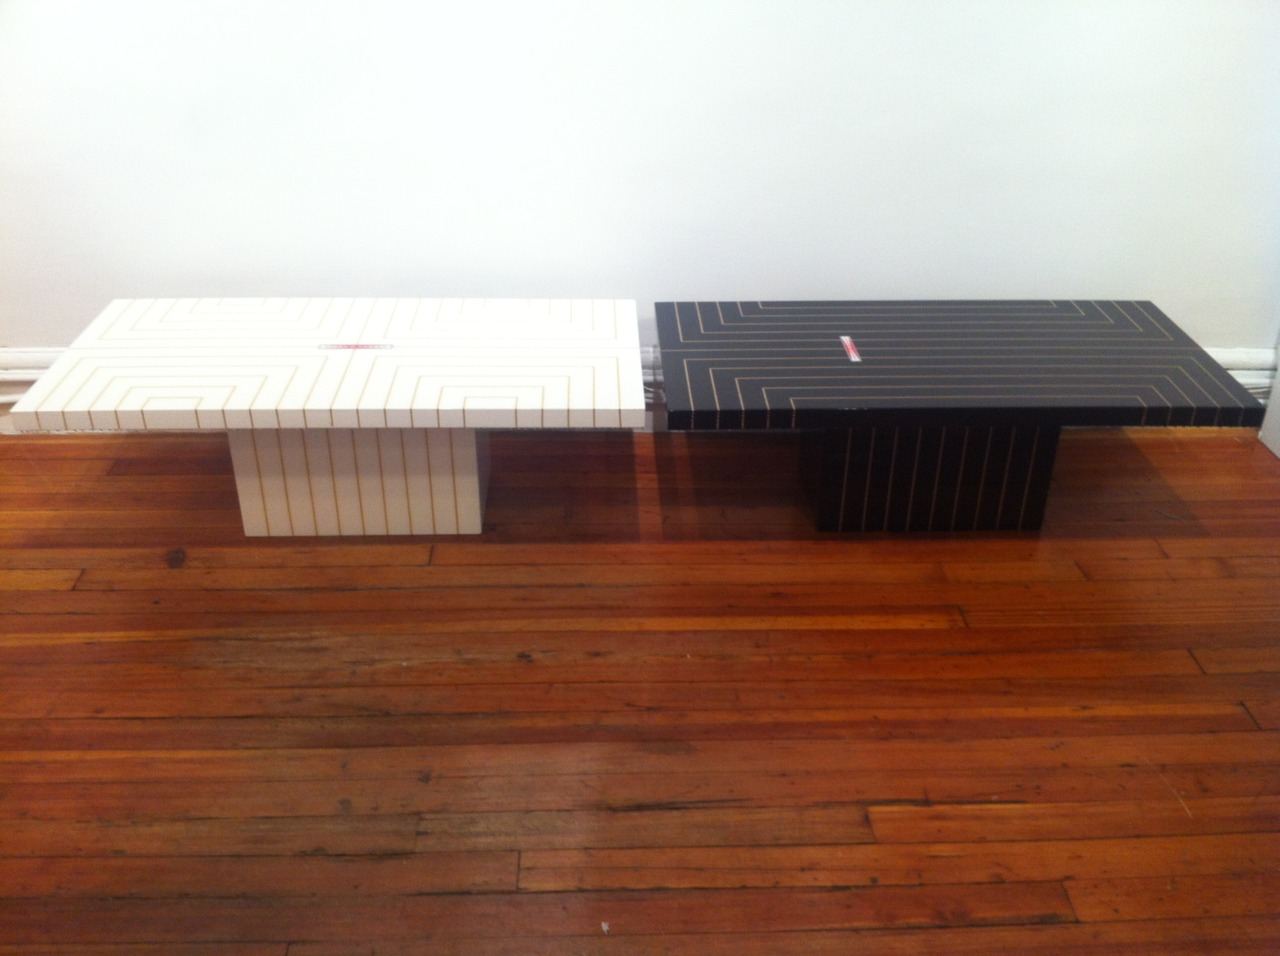 OUR WHITE  PETER DAYTON TABLE  GETS A NEW COMPANION   WE'RE DIGGING THE SURFBOARD-MEETS-ELLSWORTH KELLY VIBE